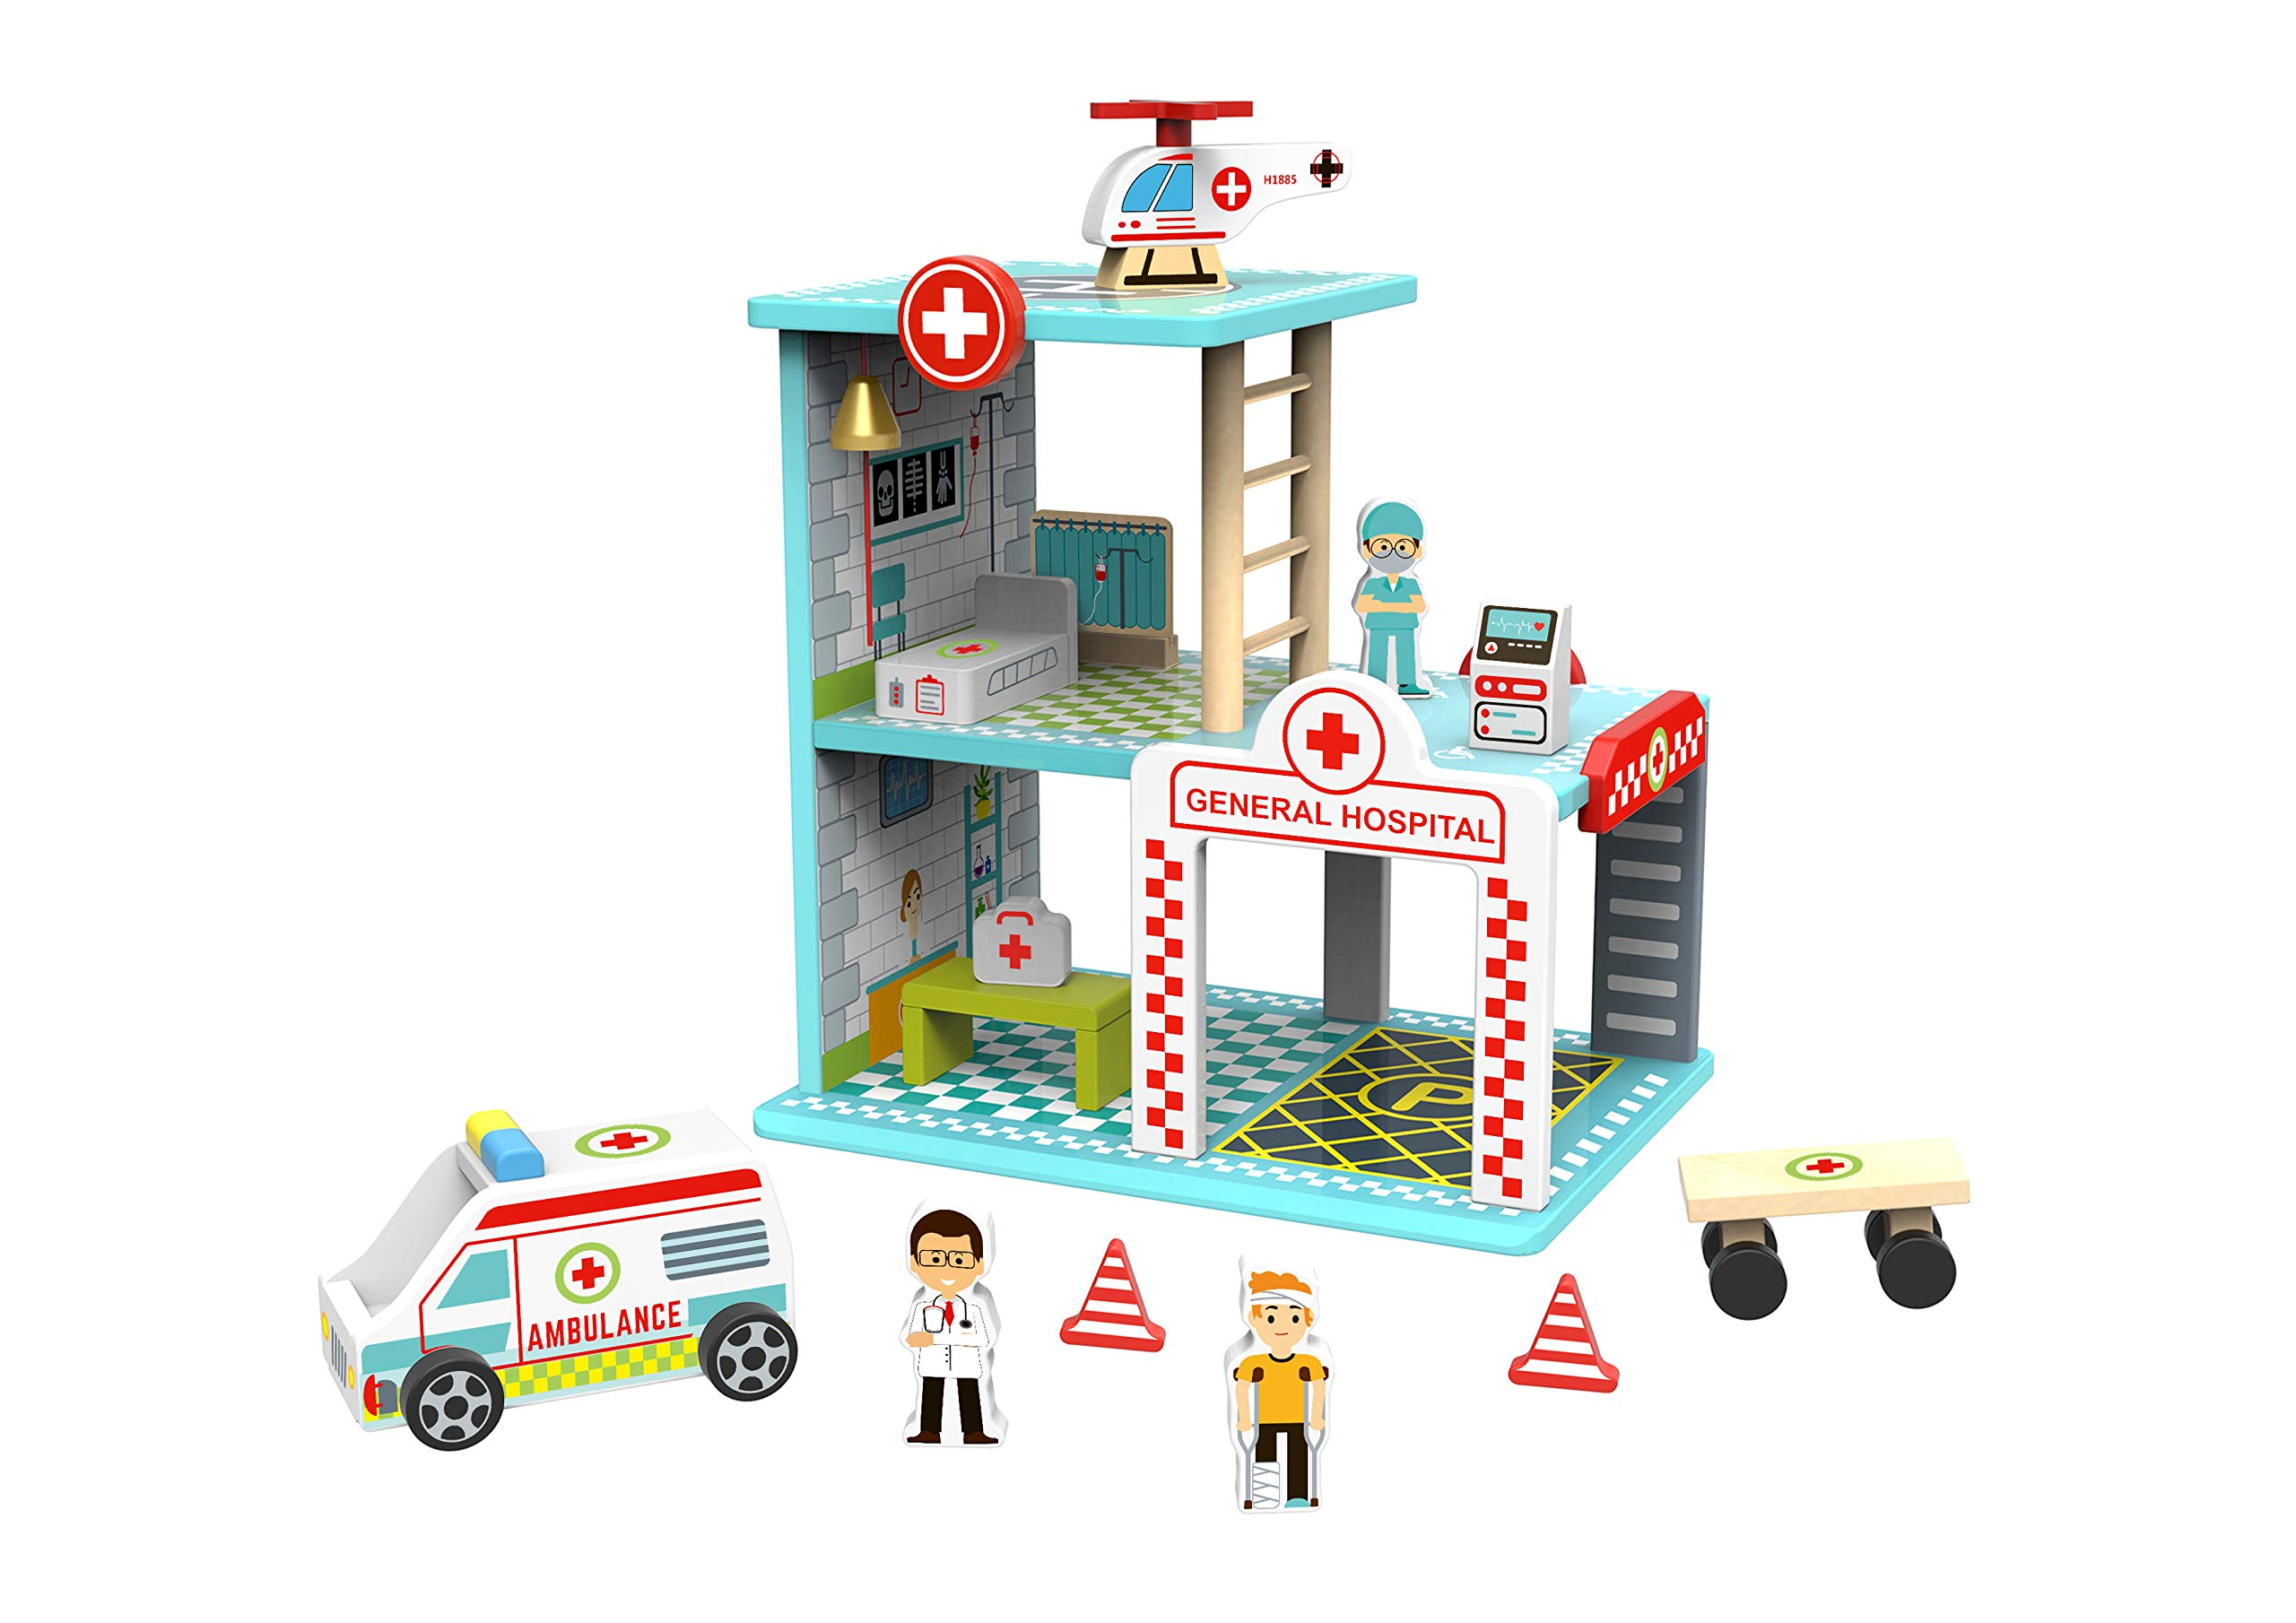 TOYSTER'S My Big Hospital Station Wooden Emergency Vehicle Playset | Toddler Toy House Dollhouse for Boys and Girls | Kids Wood Doctor Nurse Play Set Playhouse | Suitable for Ages 3 and Up